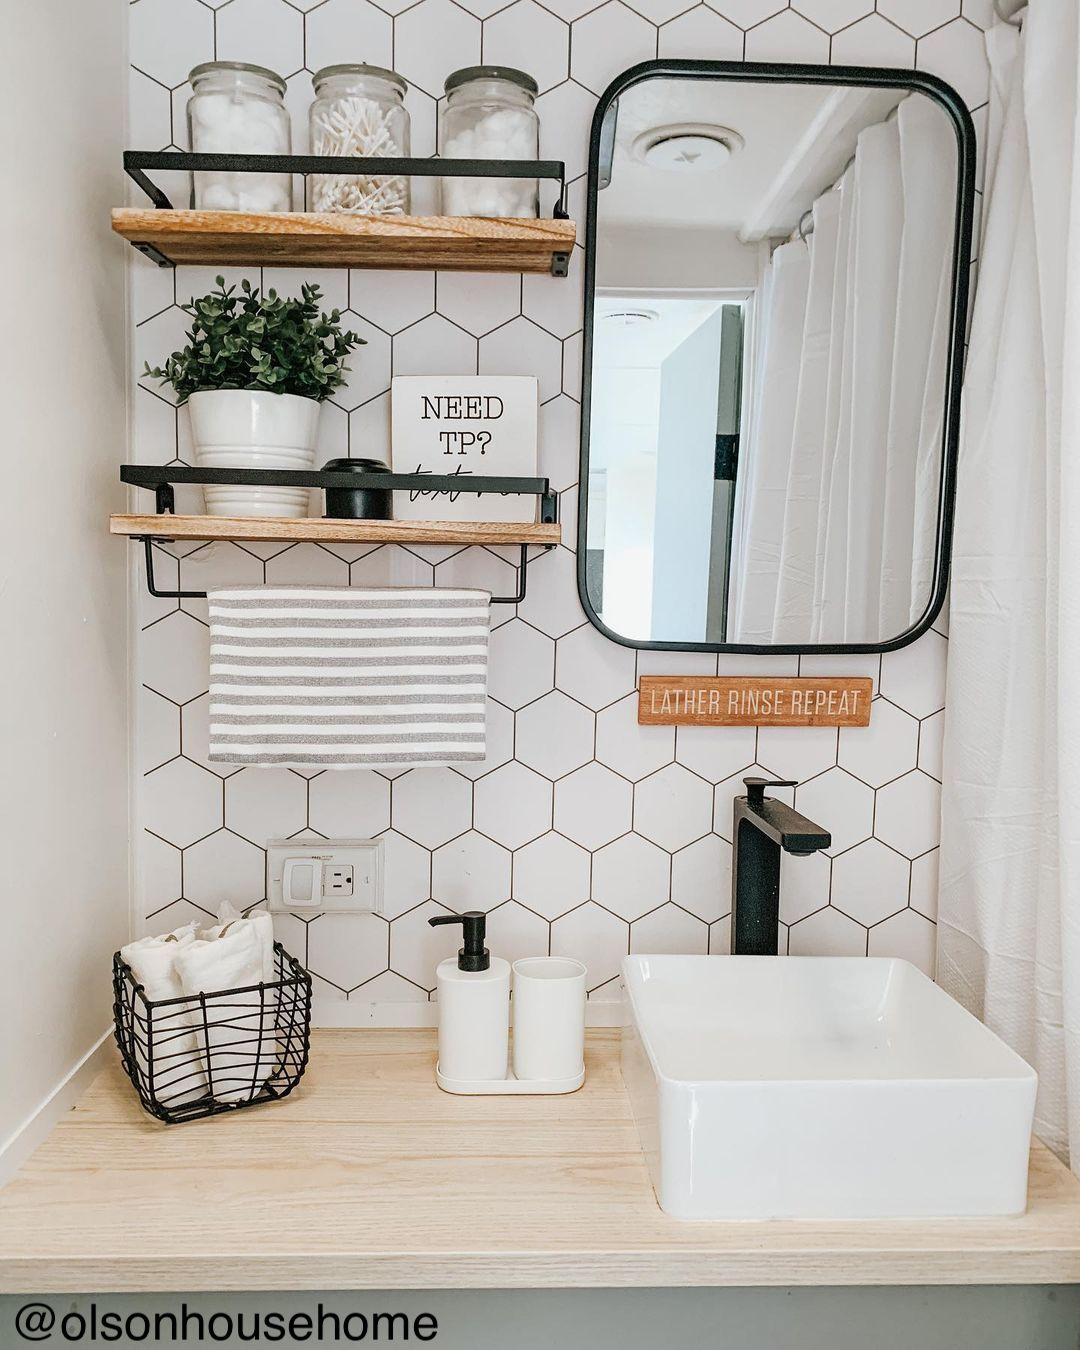 Chic renovation of a travel trailer bathroom